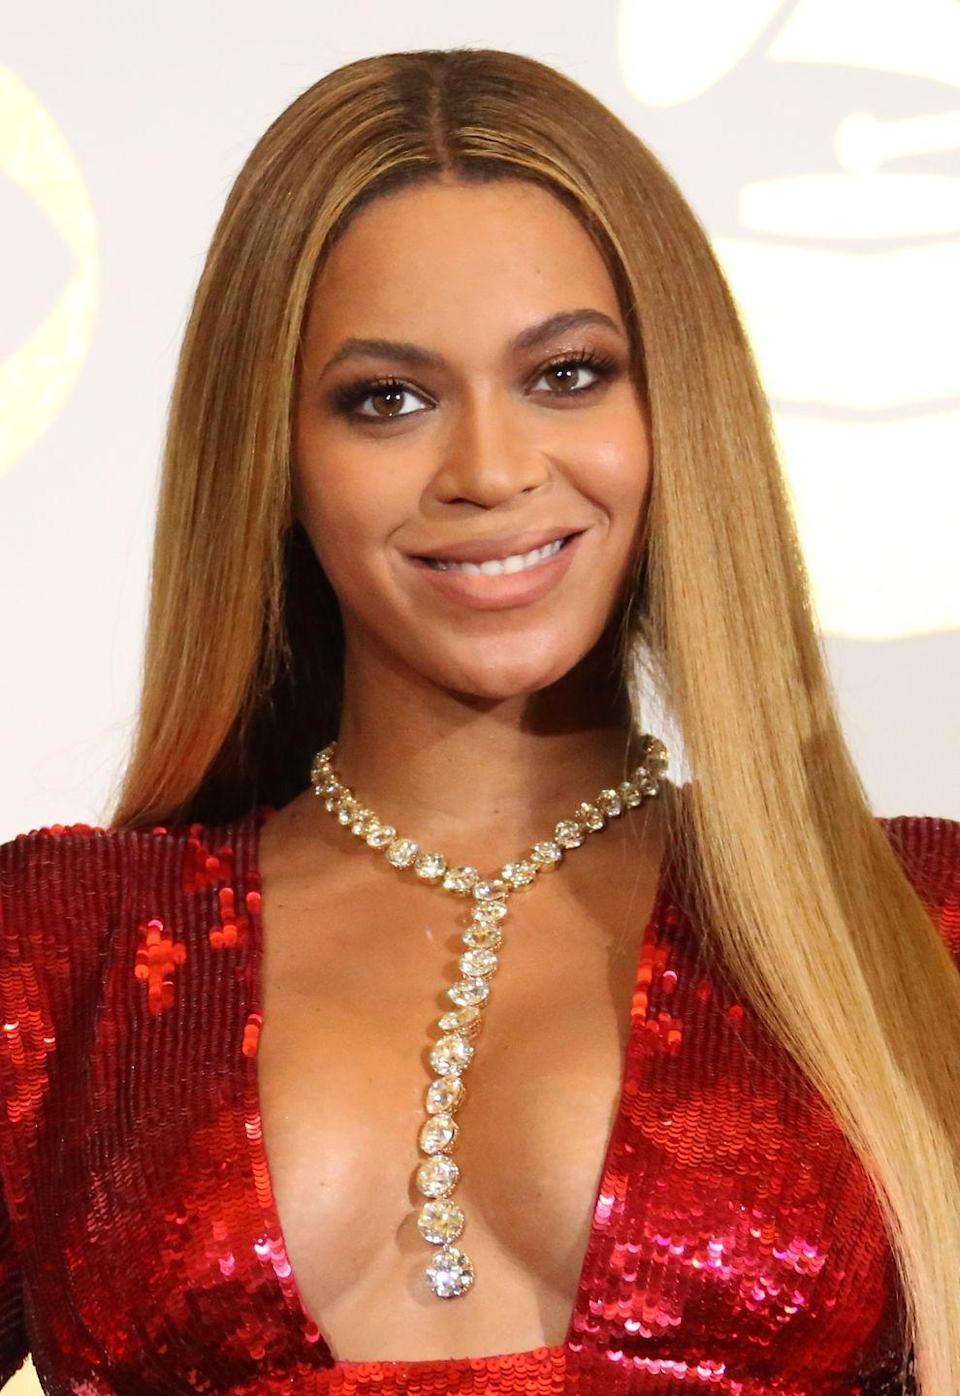 """<p>If you have medium to light brown hair, but want to go lighter, try Beyoncé's golden shade. It's an excellent option for the fall months, since it grows out gracefully, says Mahshid Baghaei, colorist at <a href=""""https://mizuforhair.com/newyork"""" rel=""""nofollow noopener"""" target=""""_blank"""" data-ylk=""""slk:mizu Louis Licari"""" class=""""link rapid-noclick-resp"""">mizu Louis Licari</a>.</p>"""